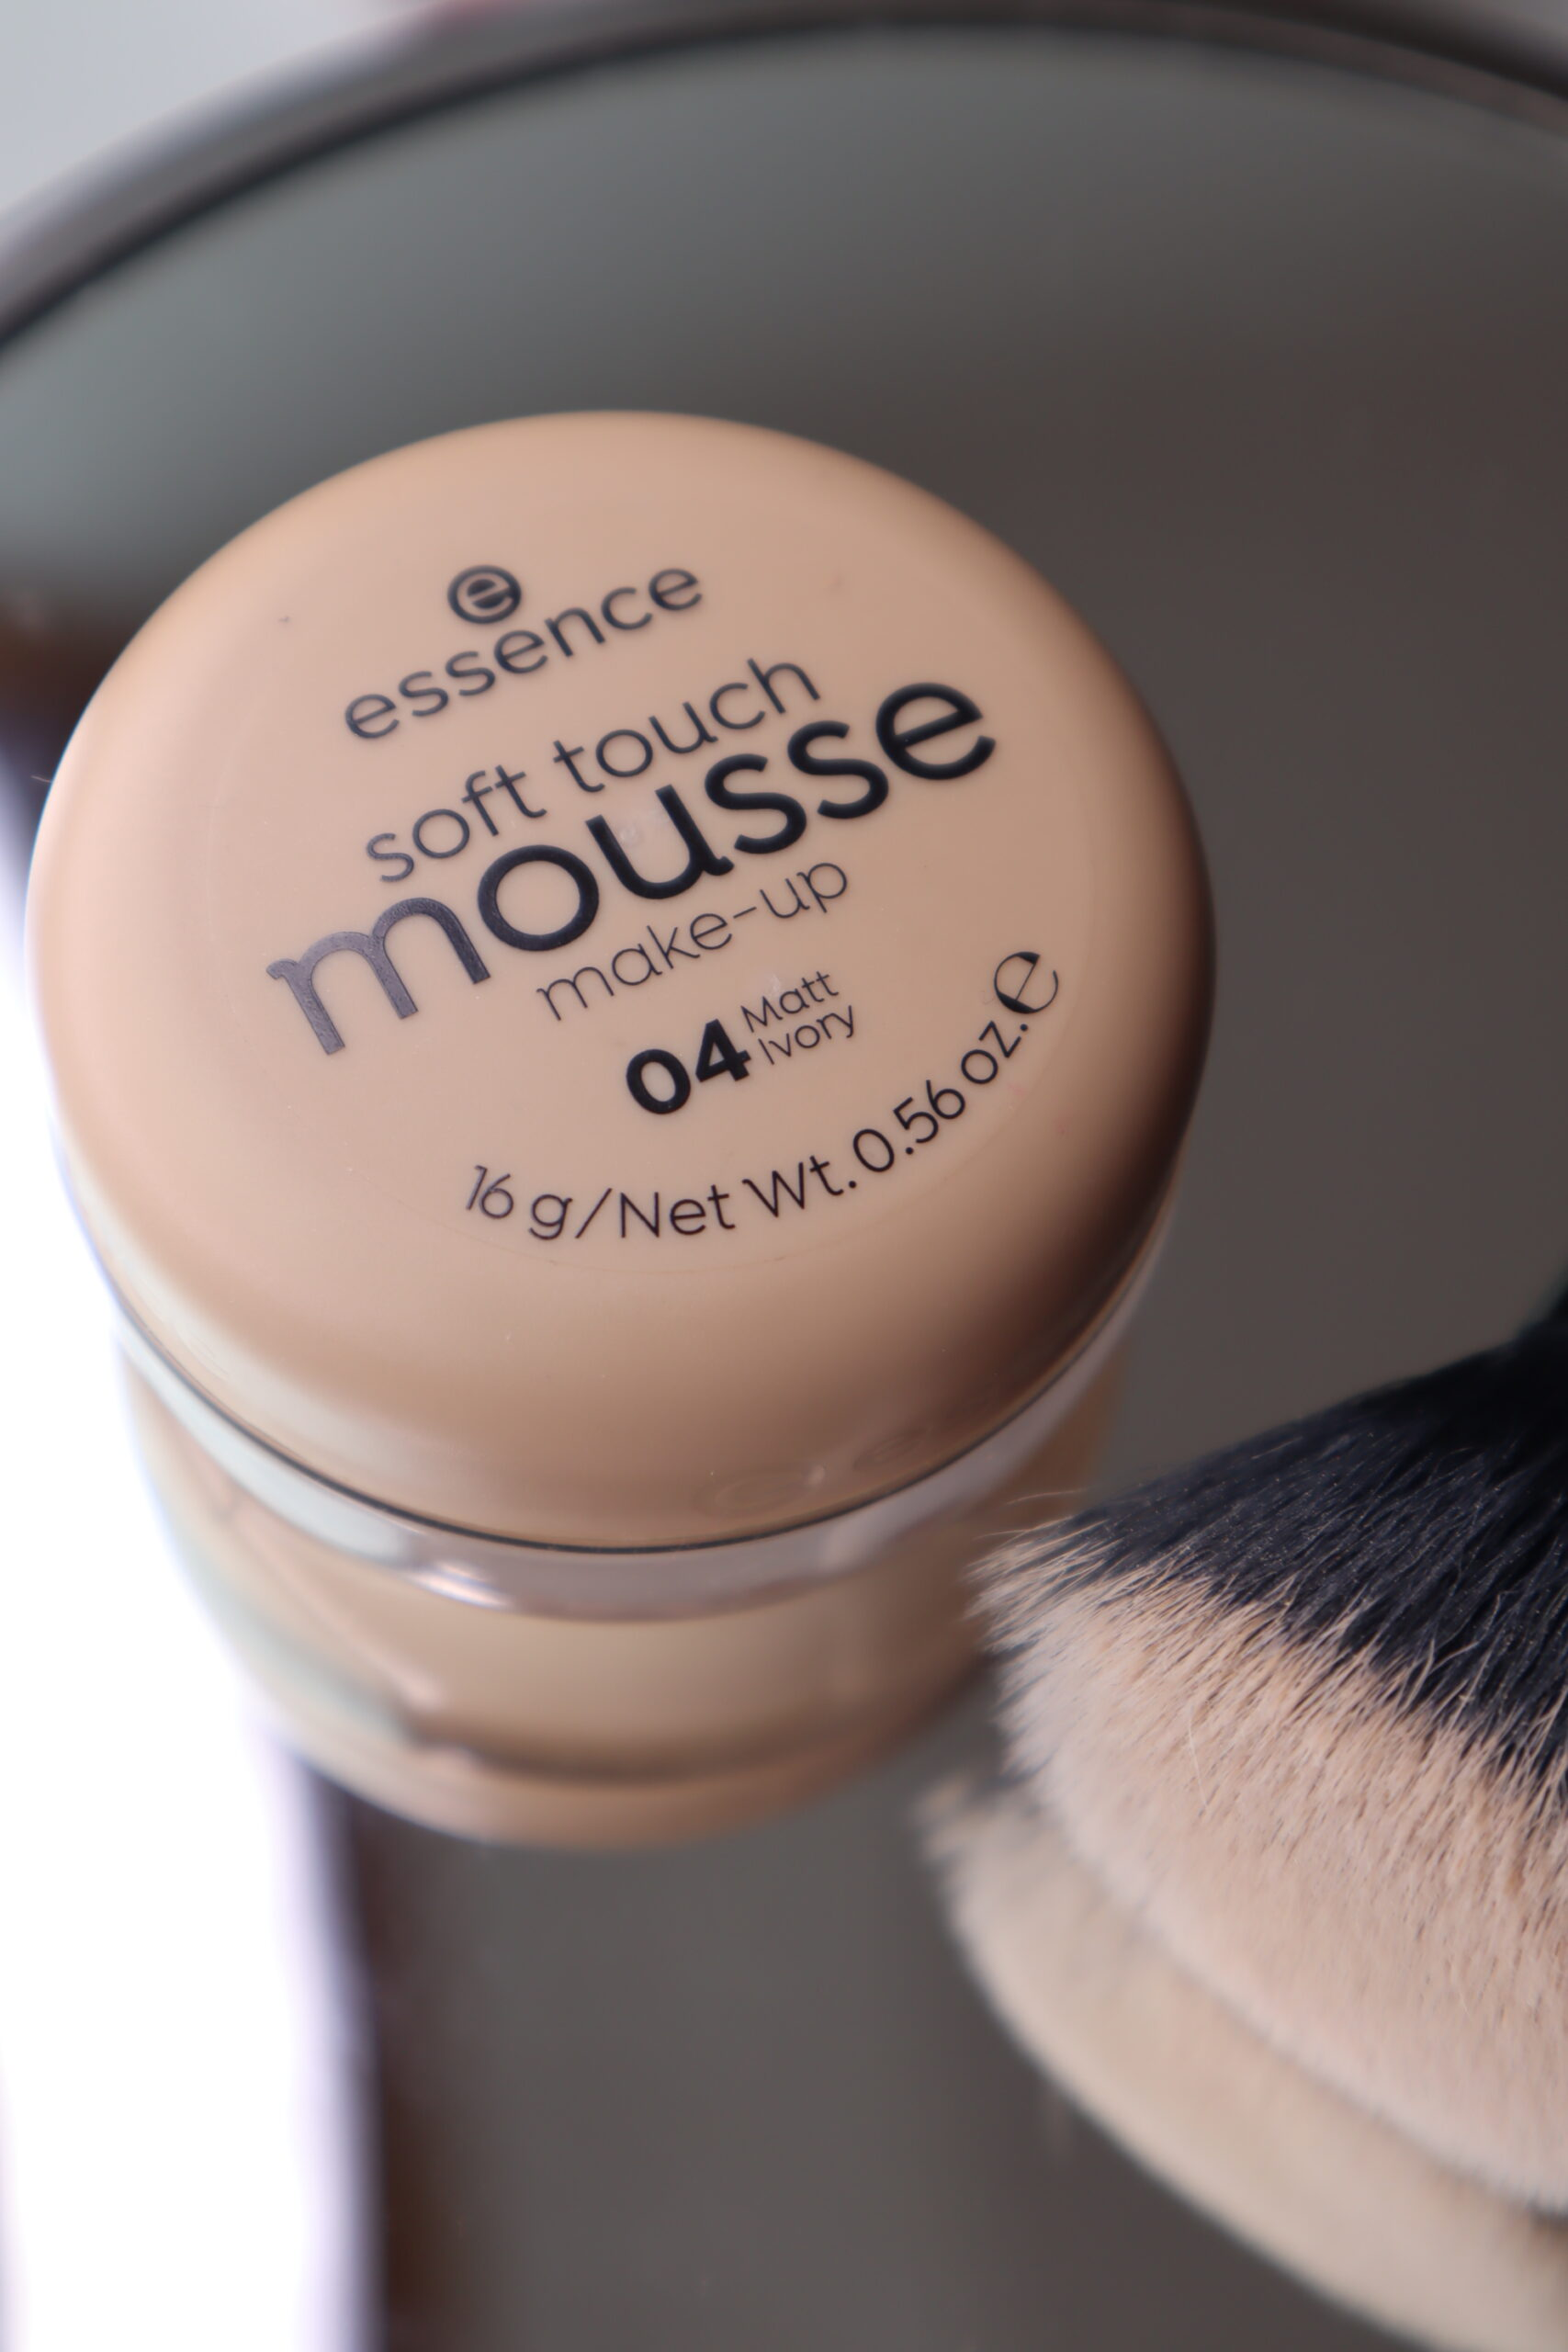 soft-touch-mousse-essence